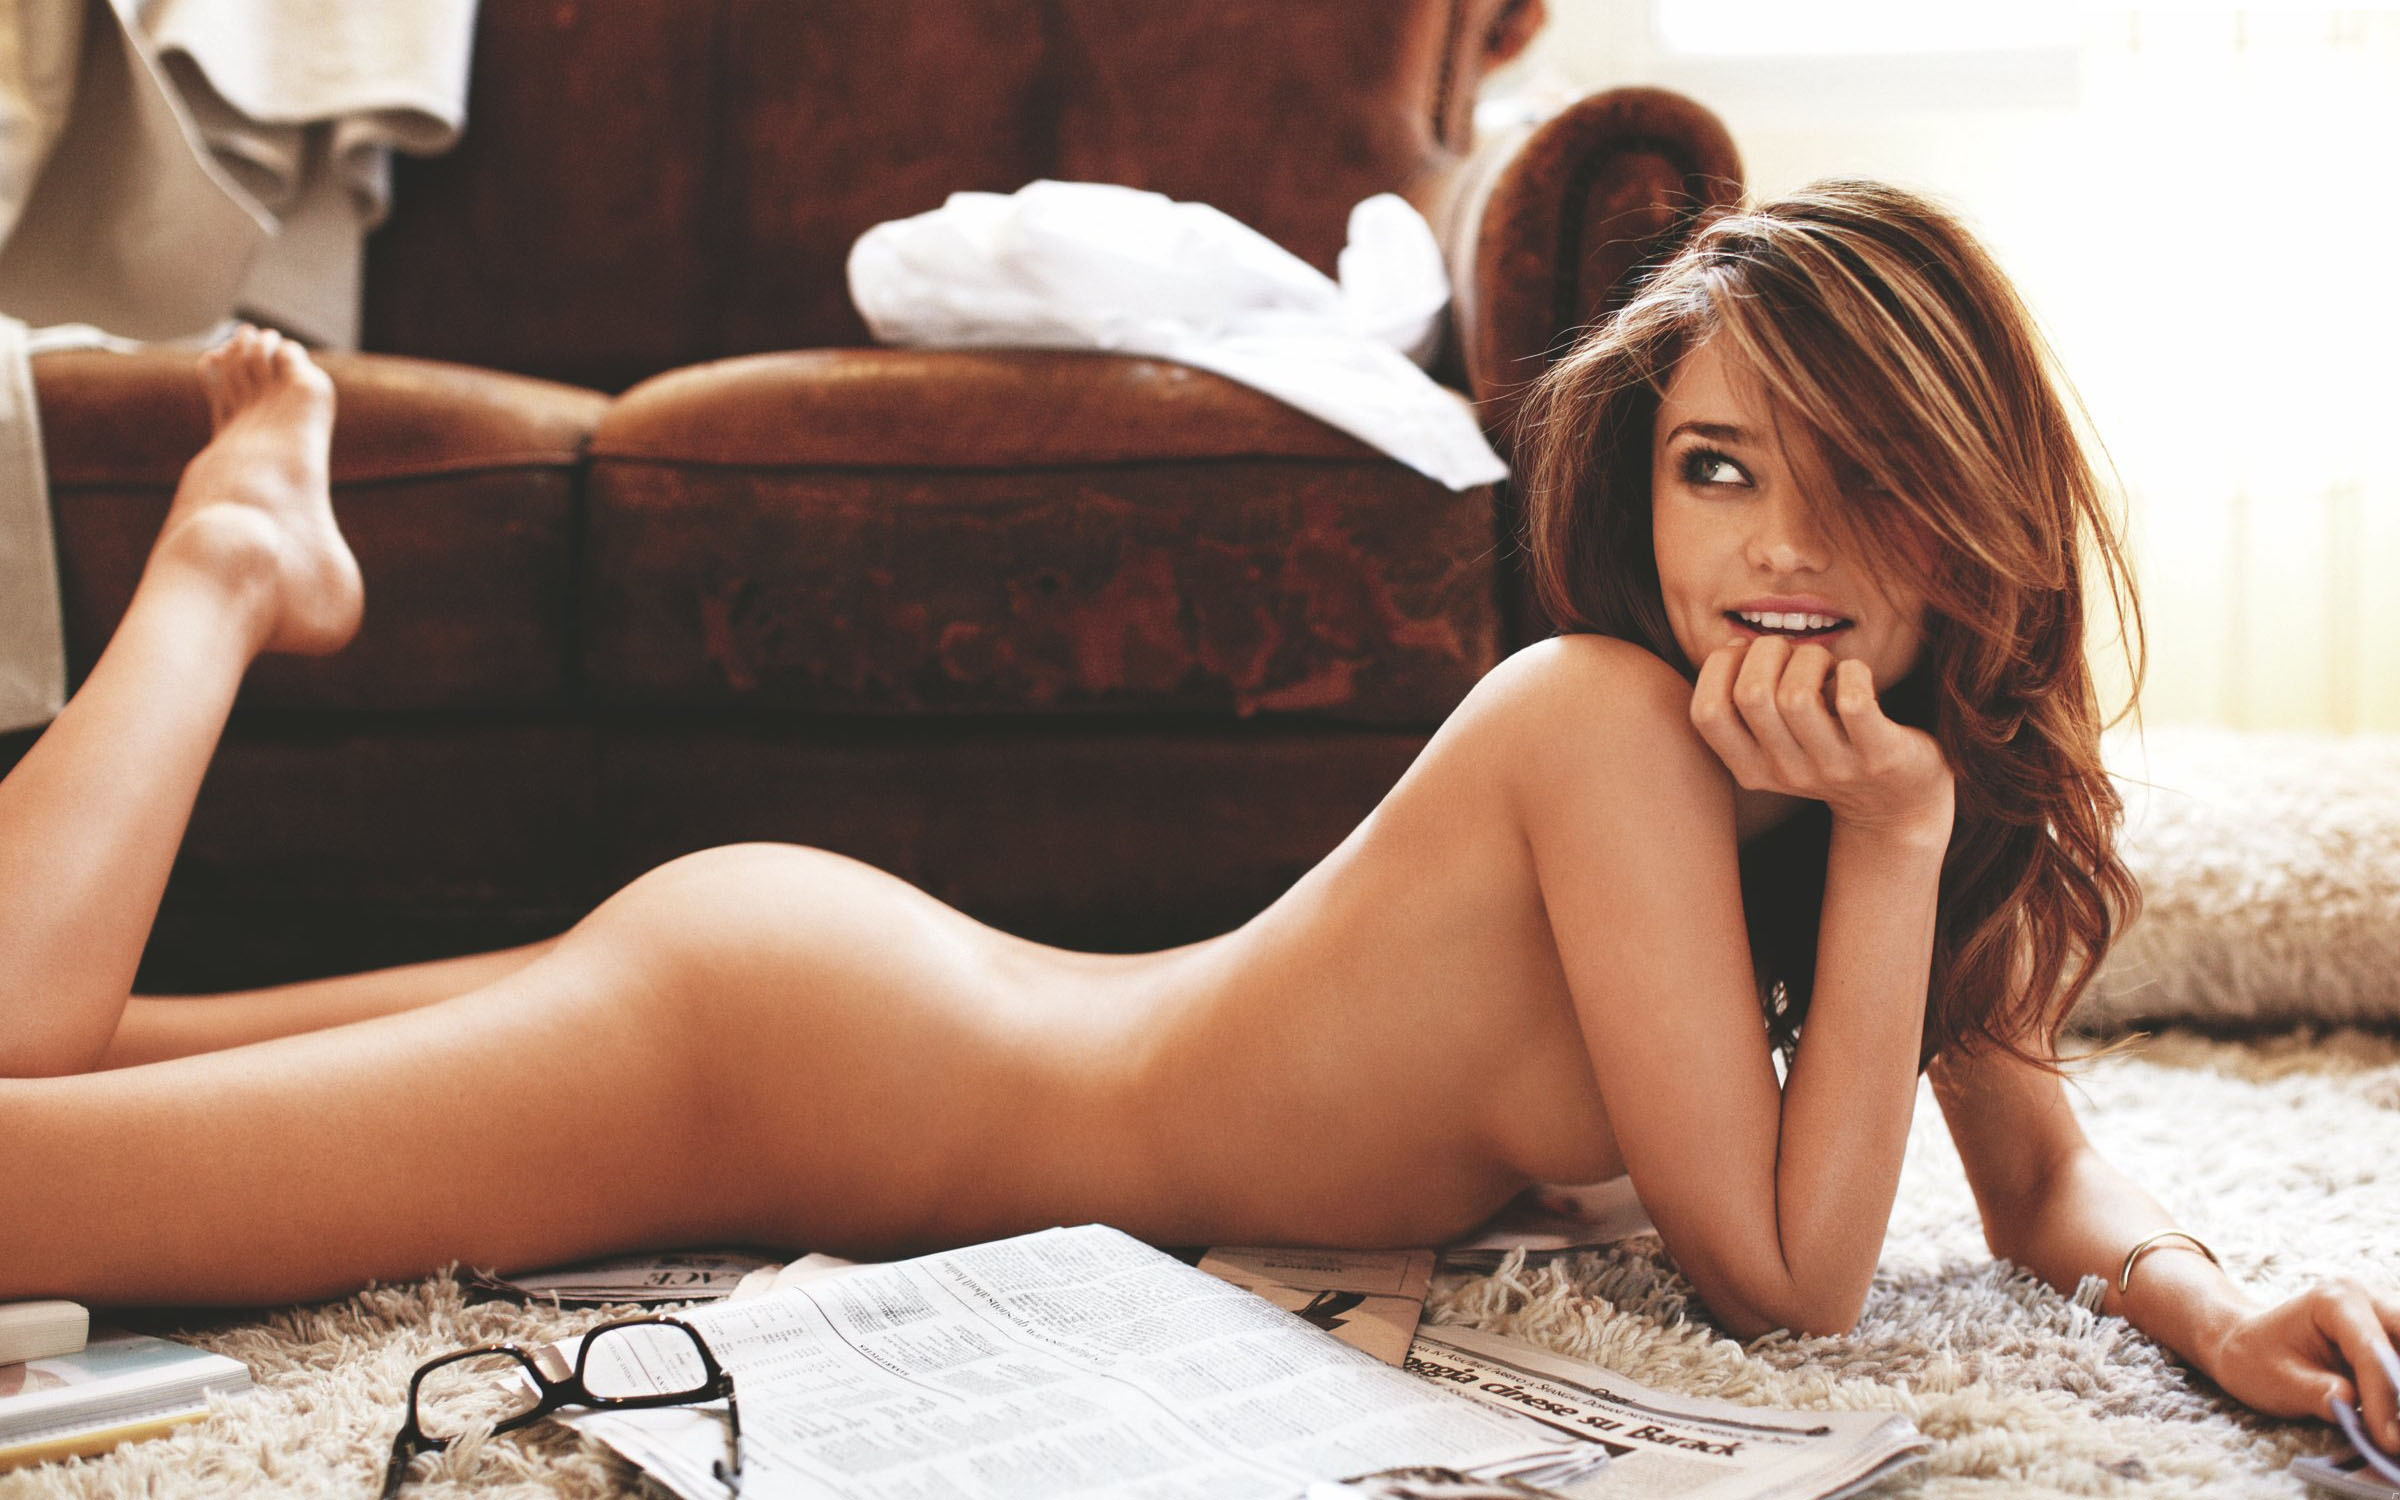 Miranda Kerr In Nice Position